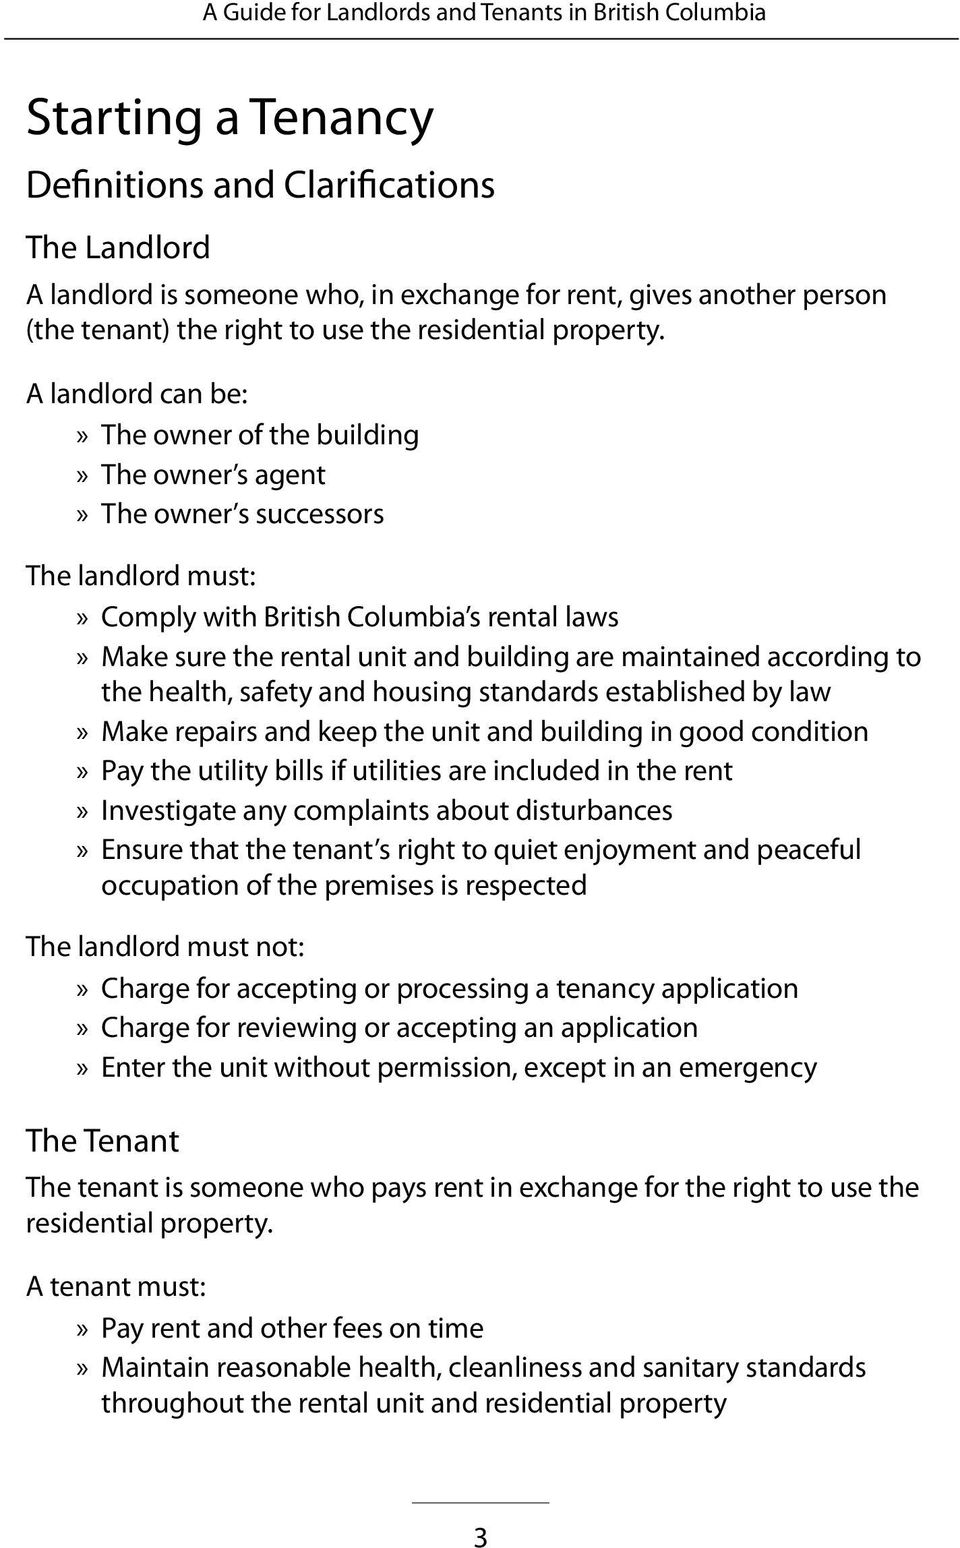 A Guide for Landlords & Tenants in British Columbia